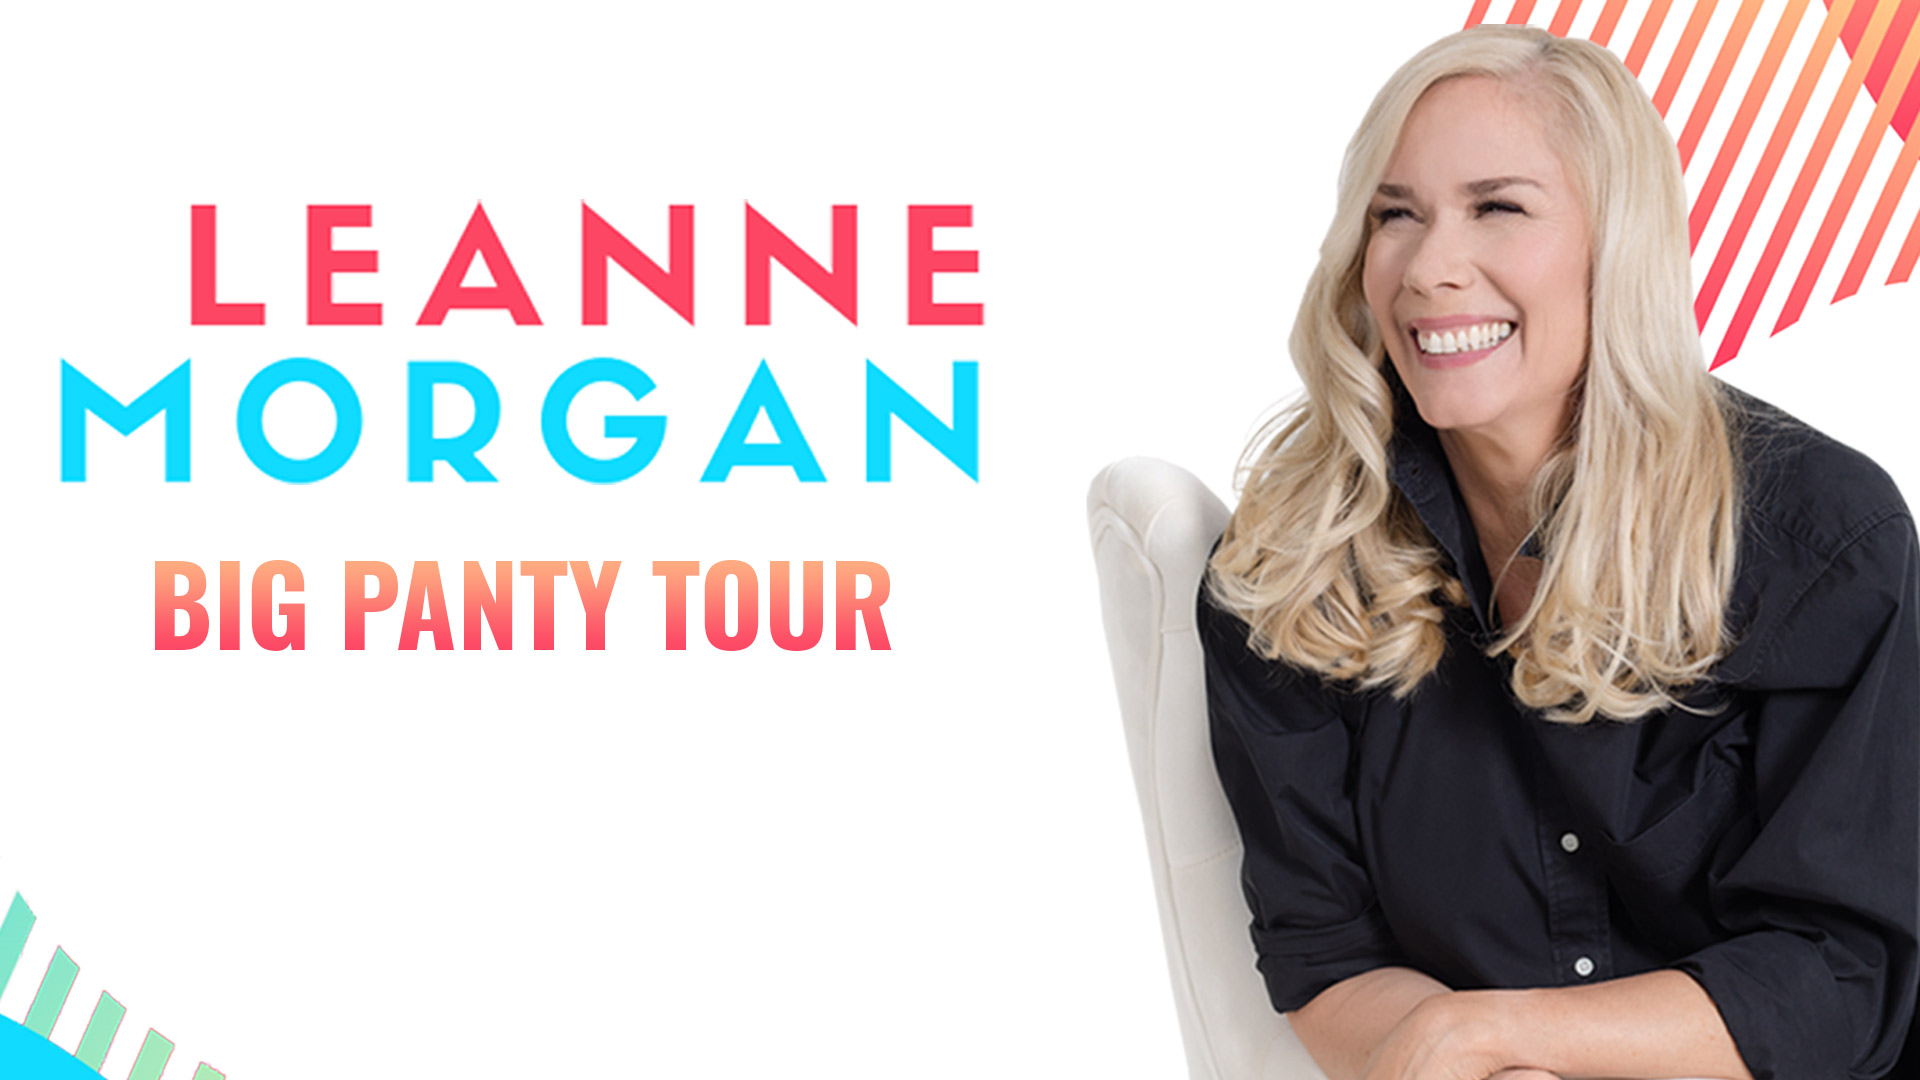 Leanne Morgan, comedy, stand up comedy, capital one hall, capital one center, things to do in DC, comedian, Tysons, Big Panty Tour, So Yummy